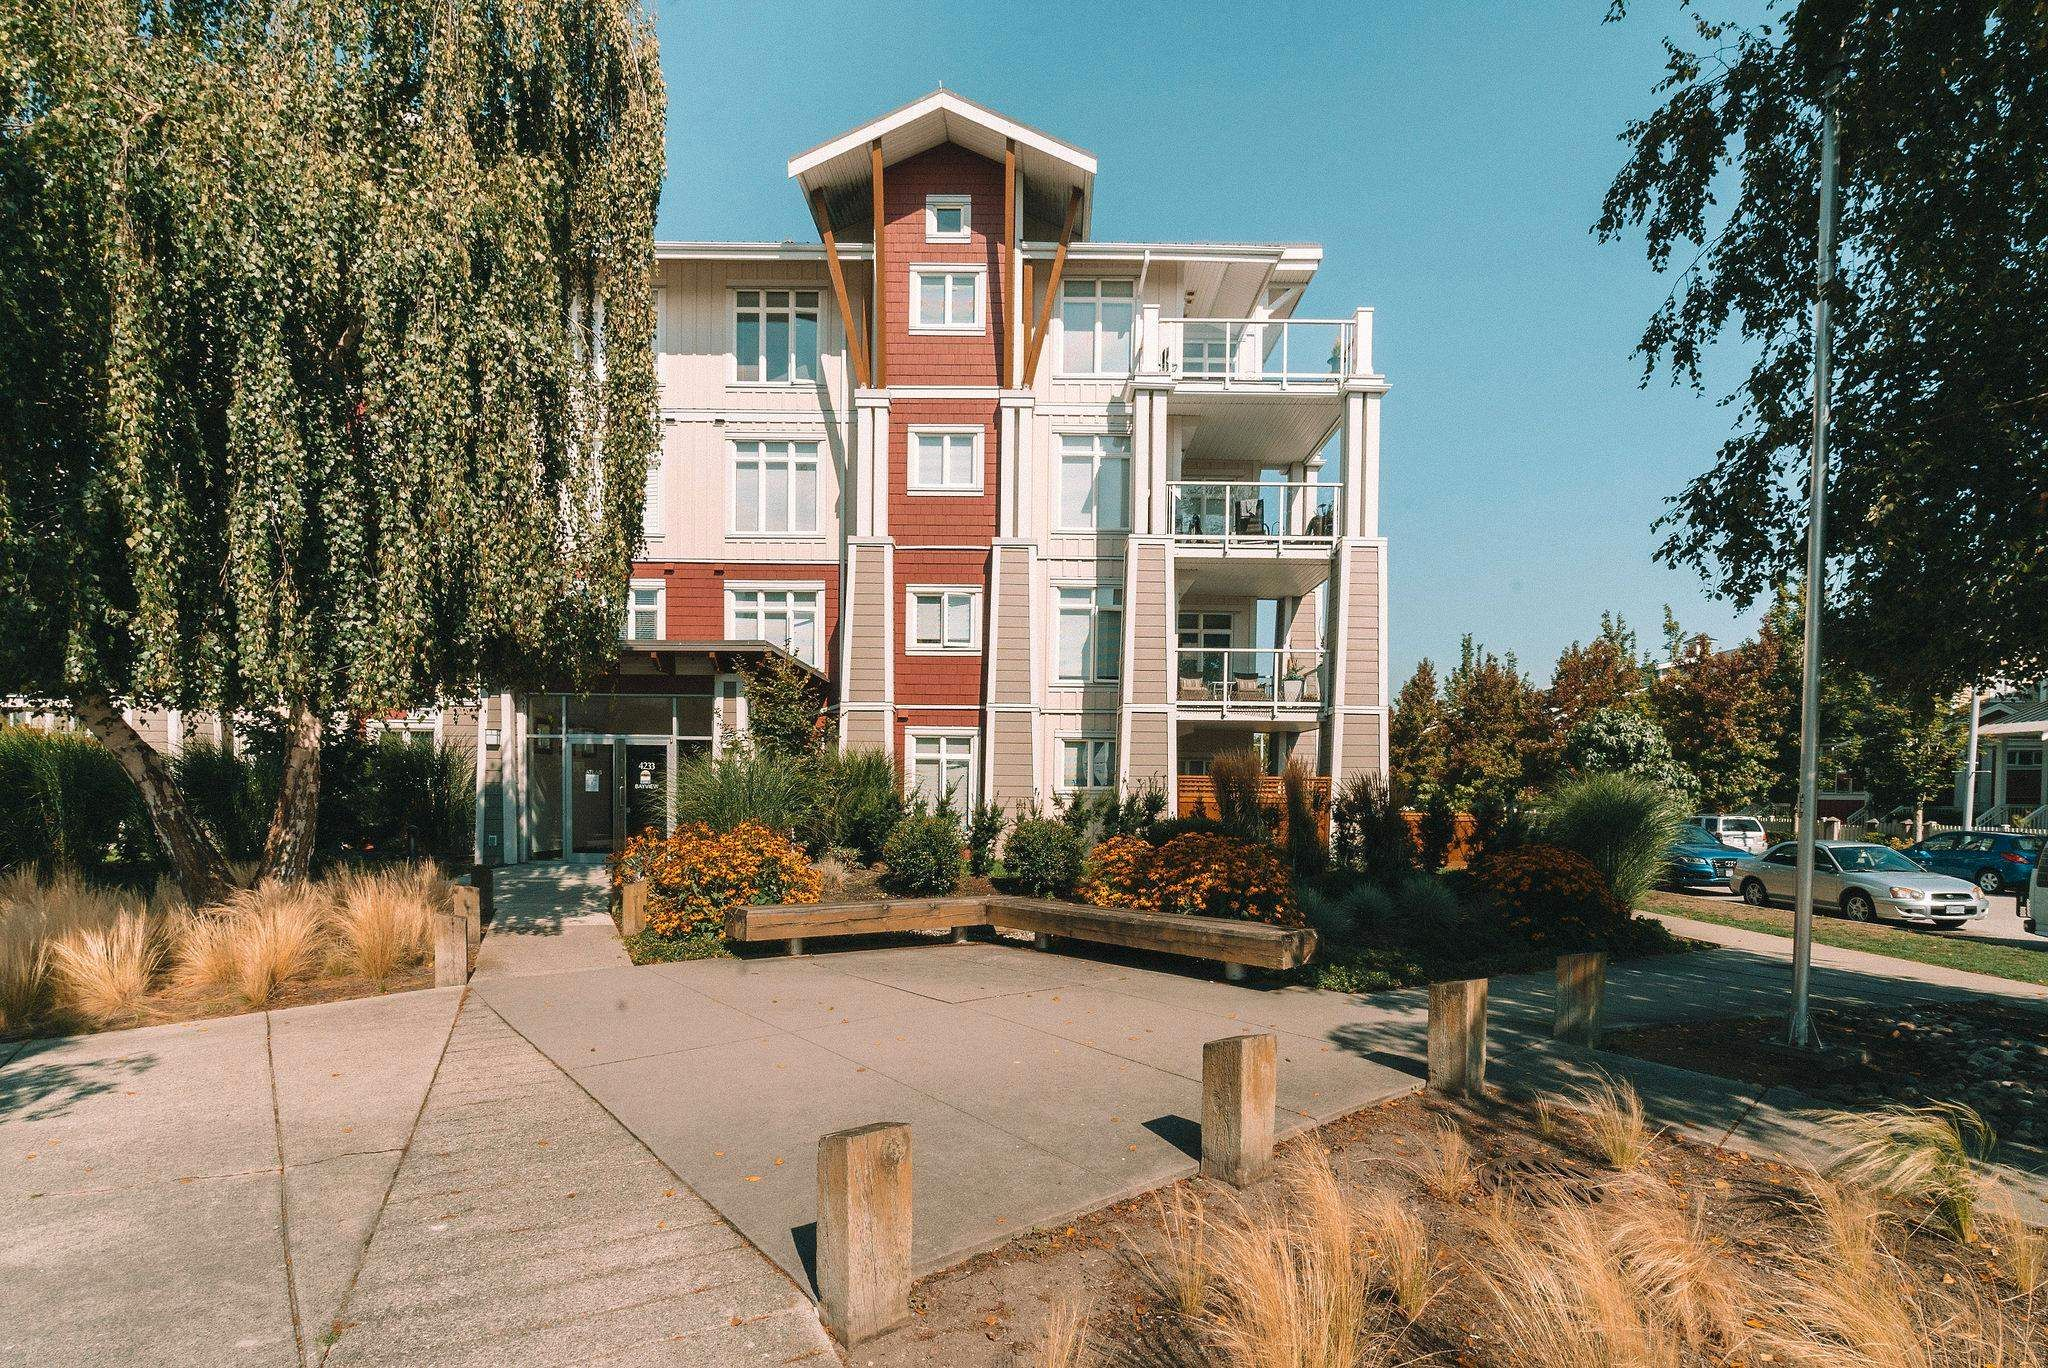 """Main Photo: 109 4233 BAYVIEW Street in Richmond: Steveston South Condo for sale in """"The Village"""" : MLS®# R2616762"""